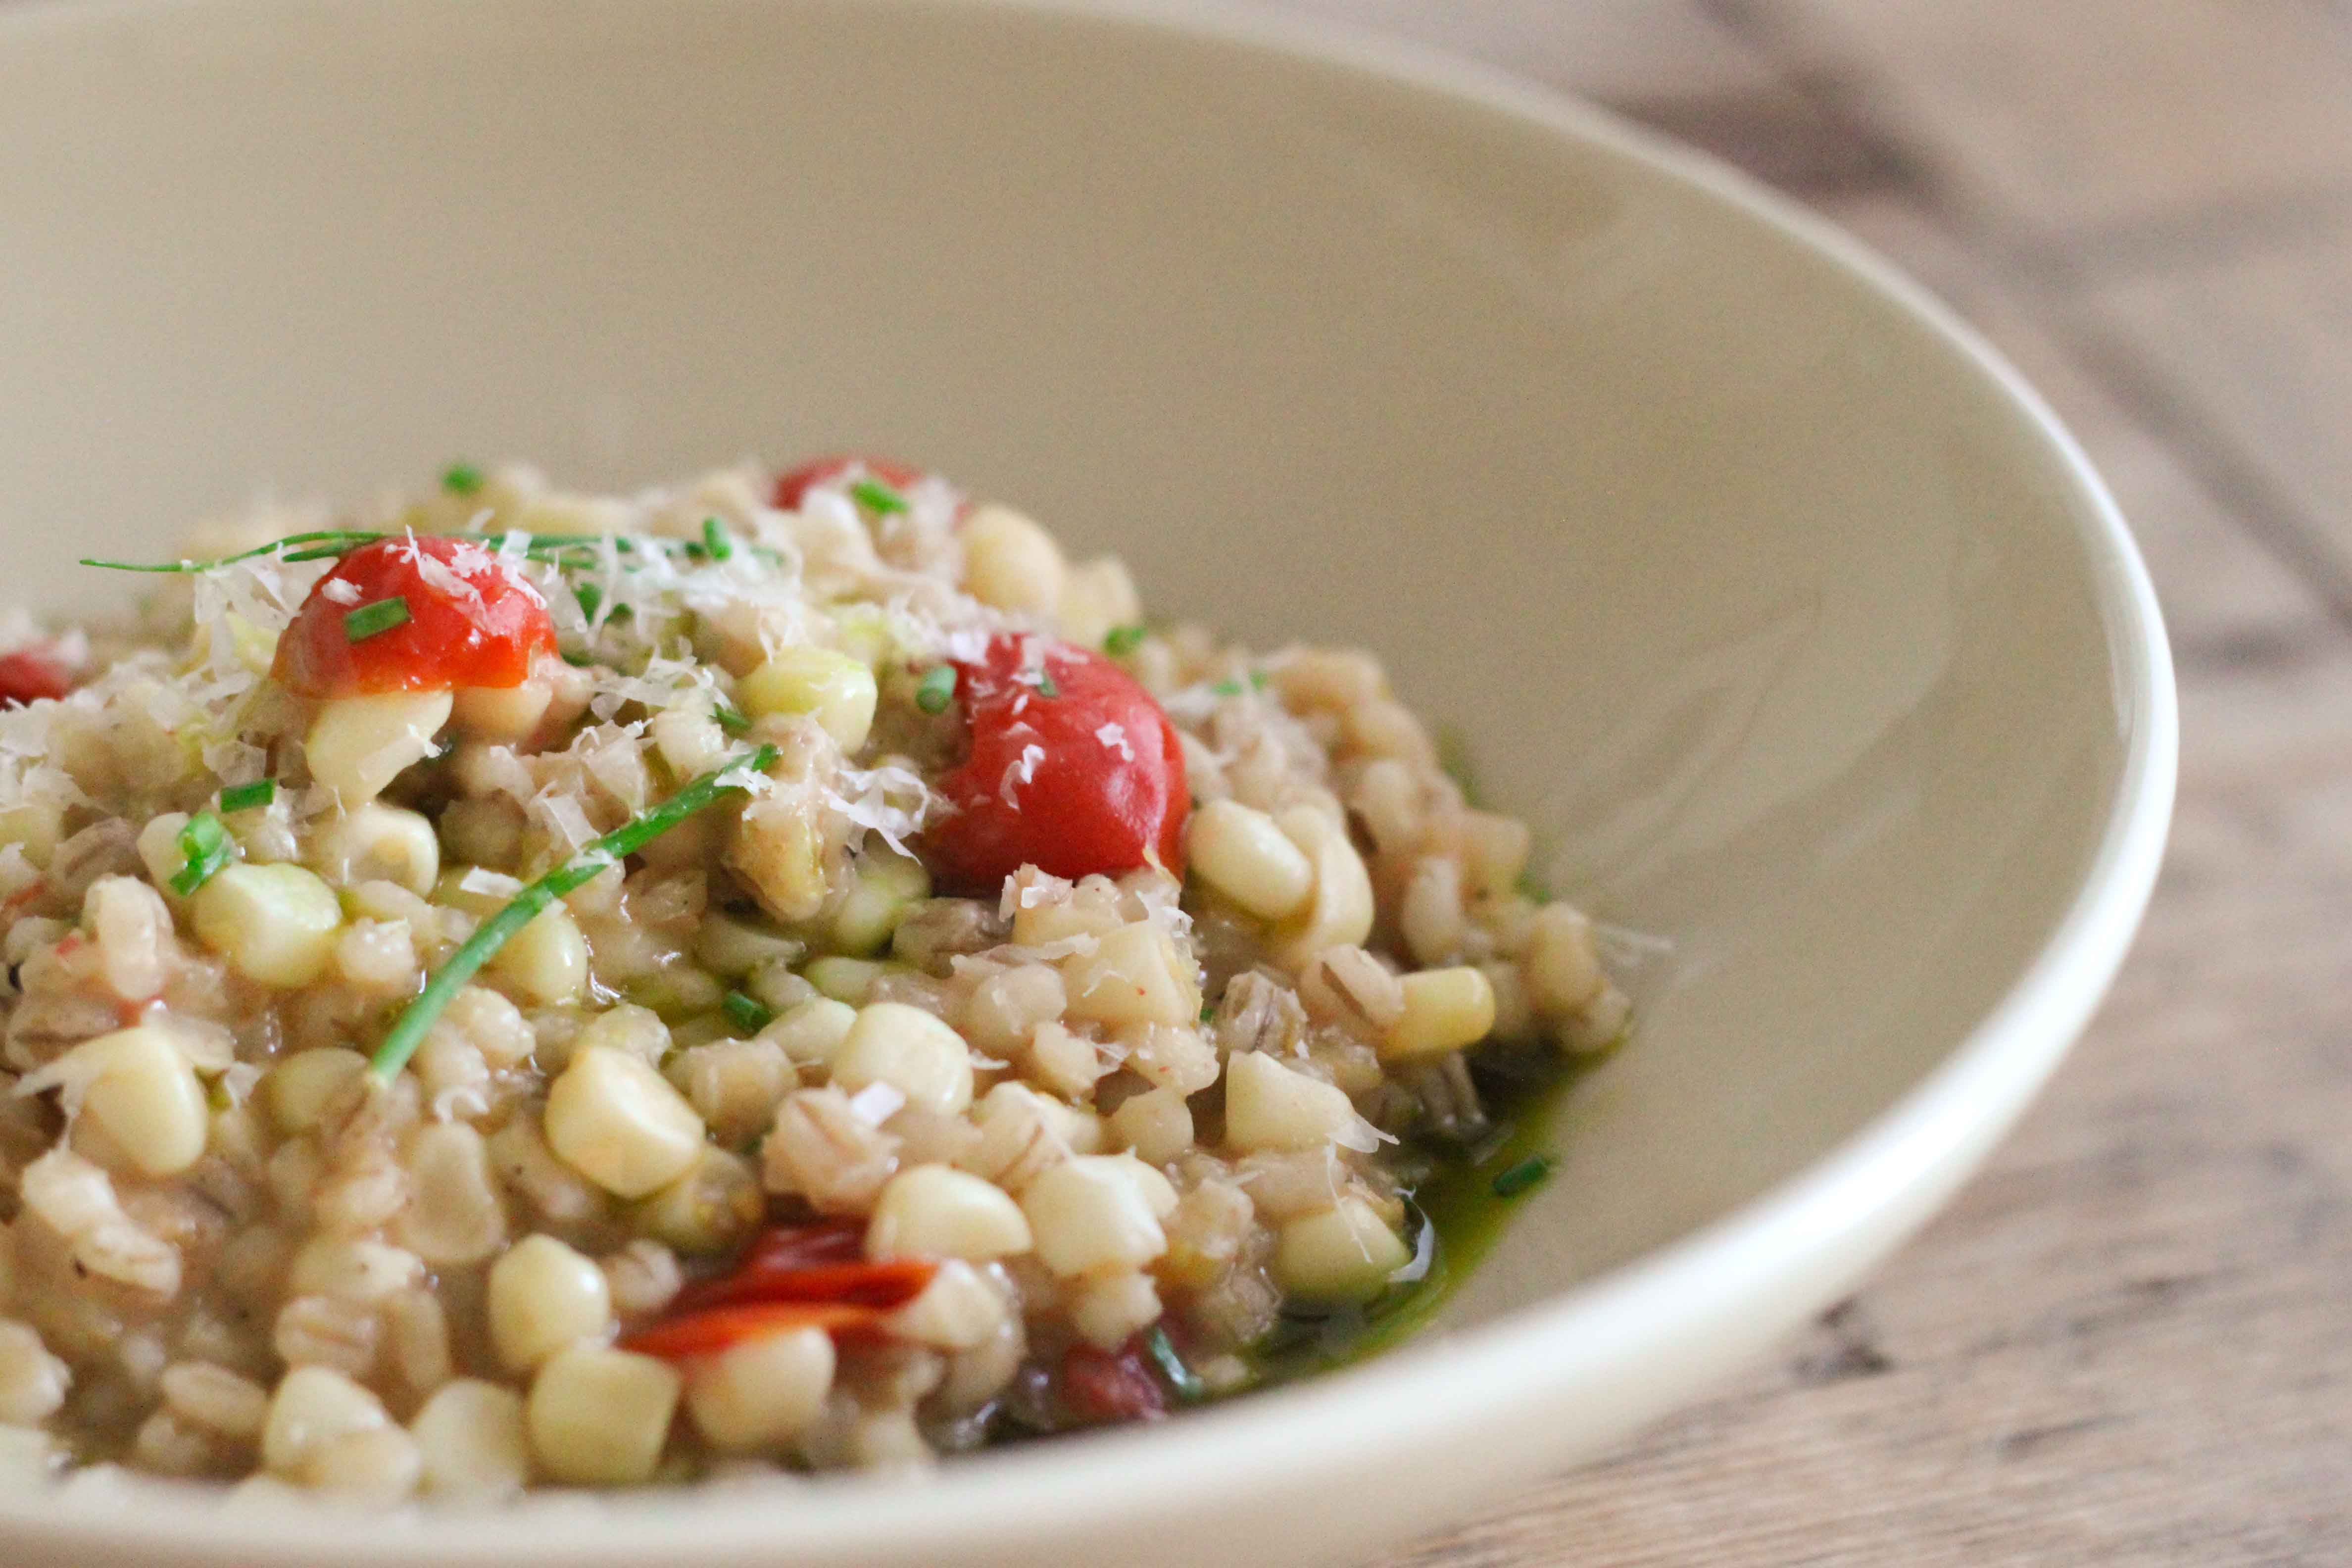 BARLEY RISOTTO WITH CORN, CHERRY TOMATOES & BASIL OIL